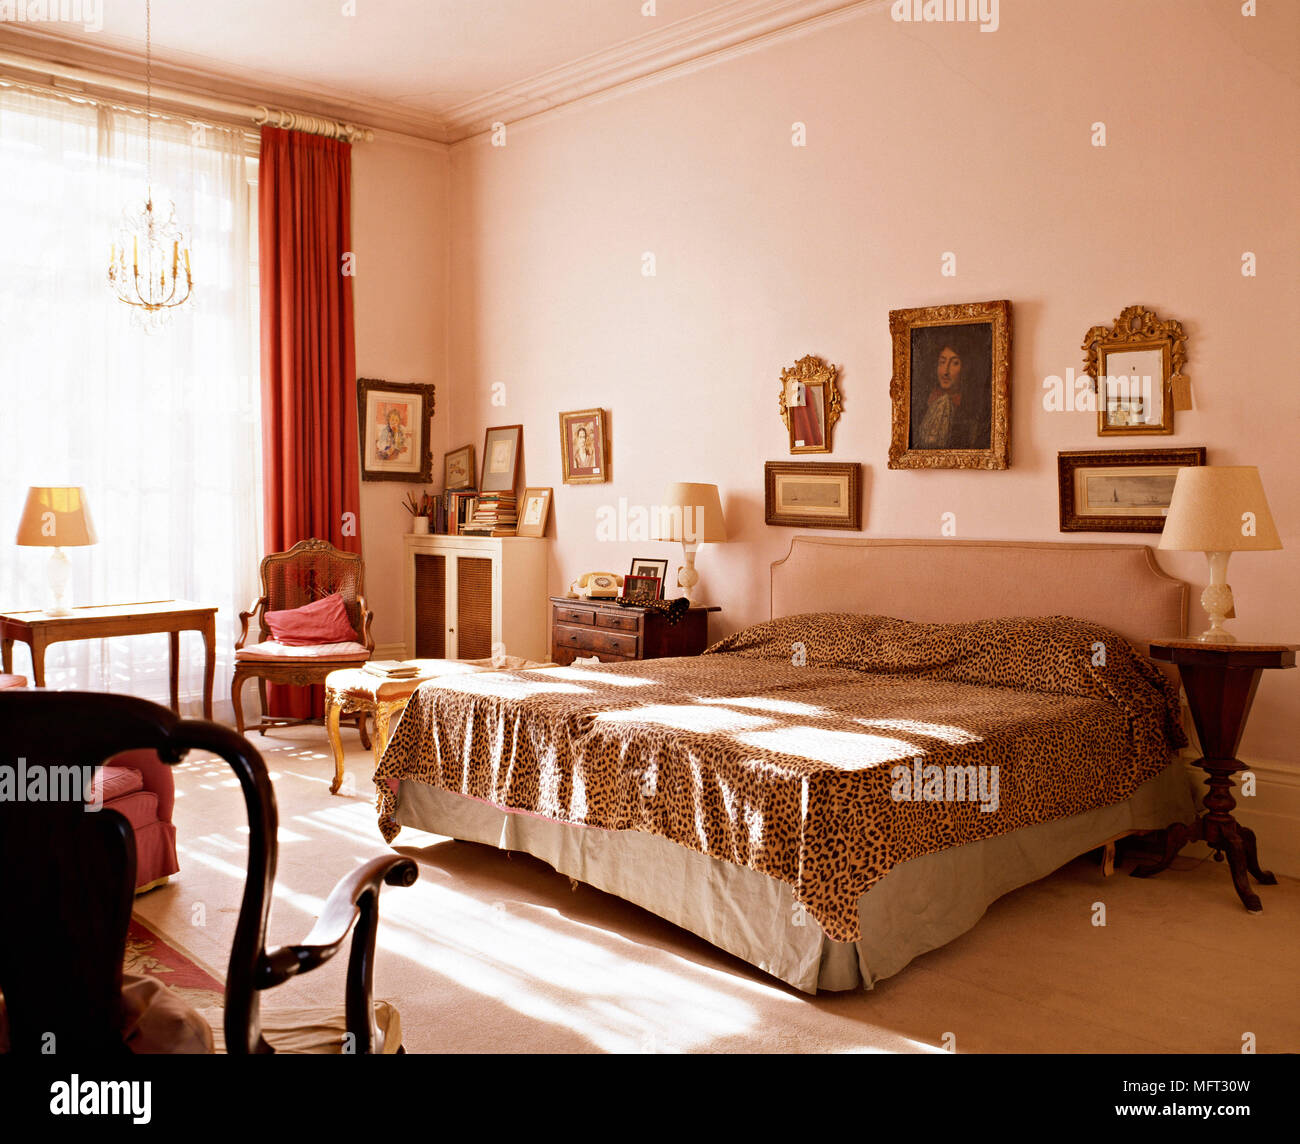 https://c8.alamy.com/comp/MFT30W/traditional-bedroom-bed-armchairs-bedside-table-lamps-curtains-animal-skin-fabric-cover-interiors-bedrooms-beds-rich-warm-colours-period-furniture-ol-MFT30W.jpg